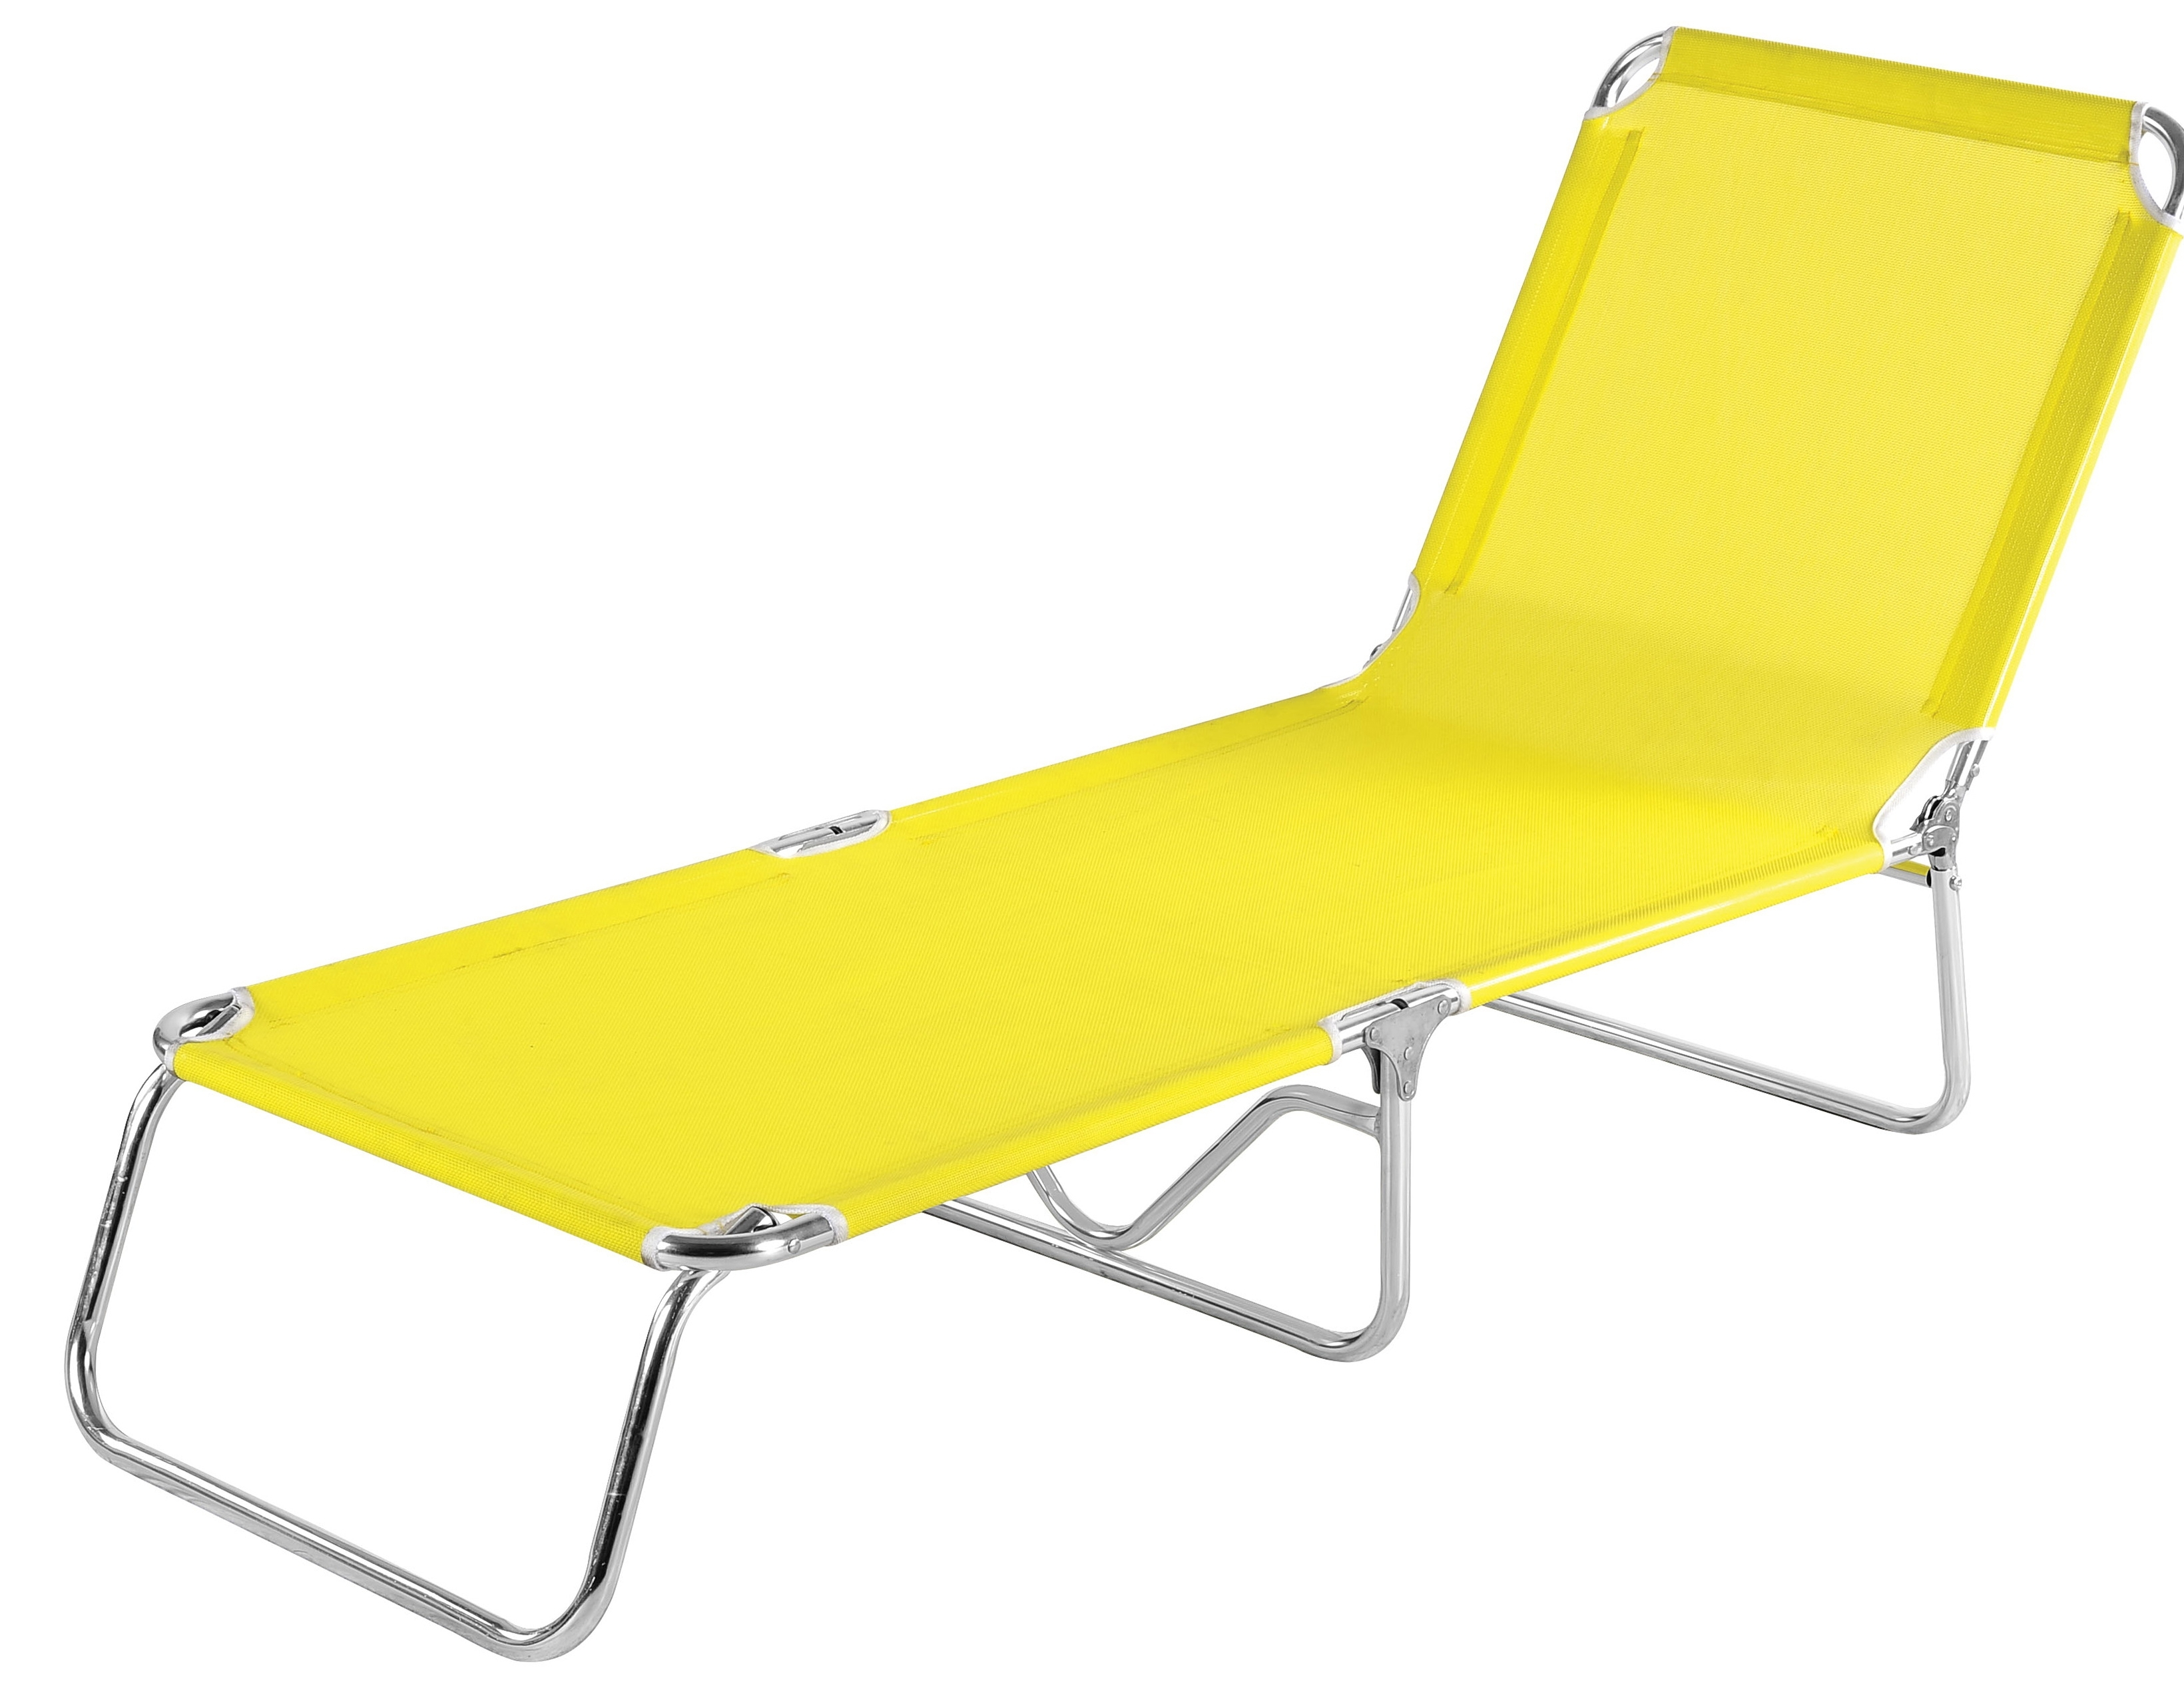 2018 Plastic Folding Chaise Lounge Chair • Lounge Chairs Ideas Inside Pvc Chaise Lounges (View 14 of 15)